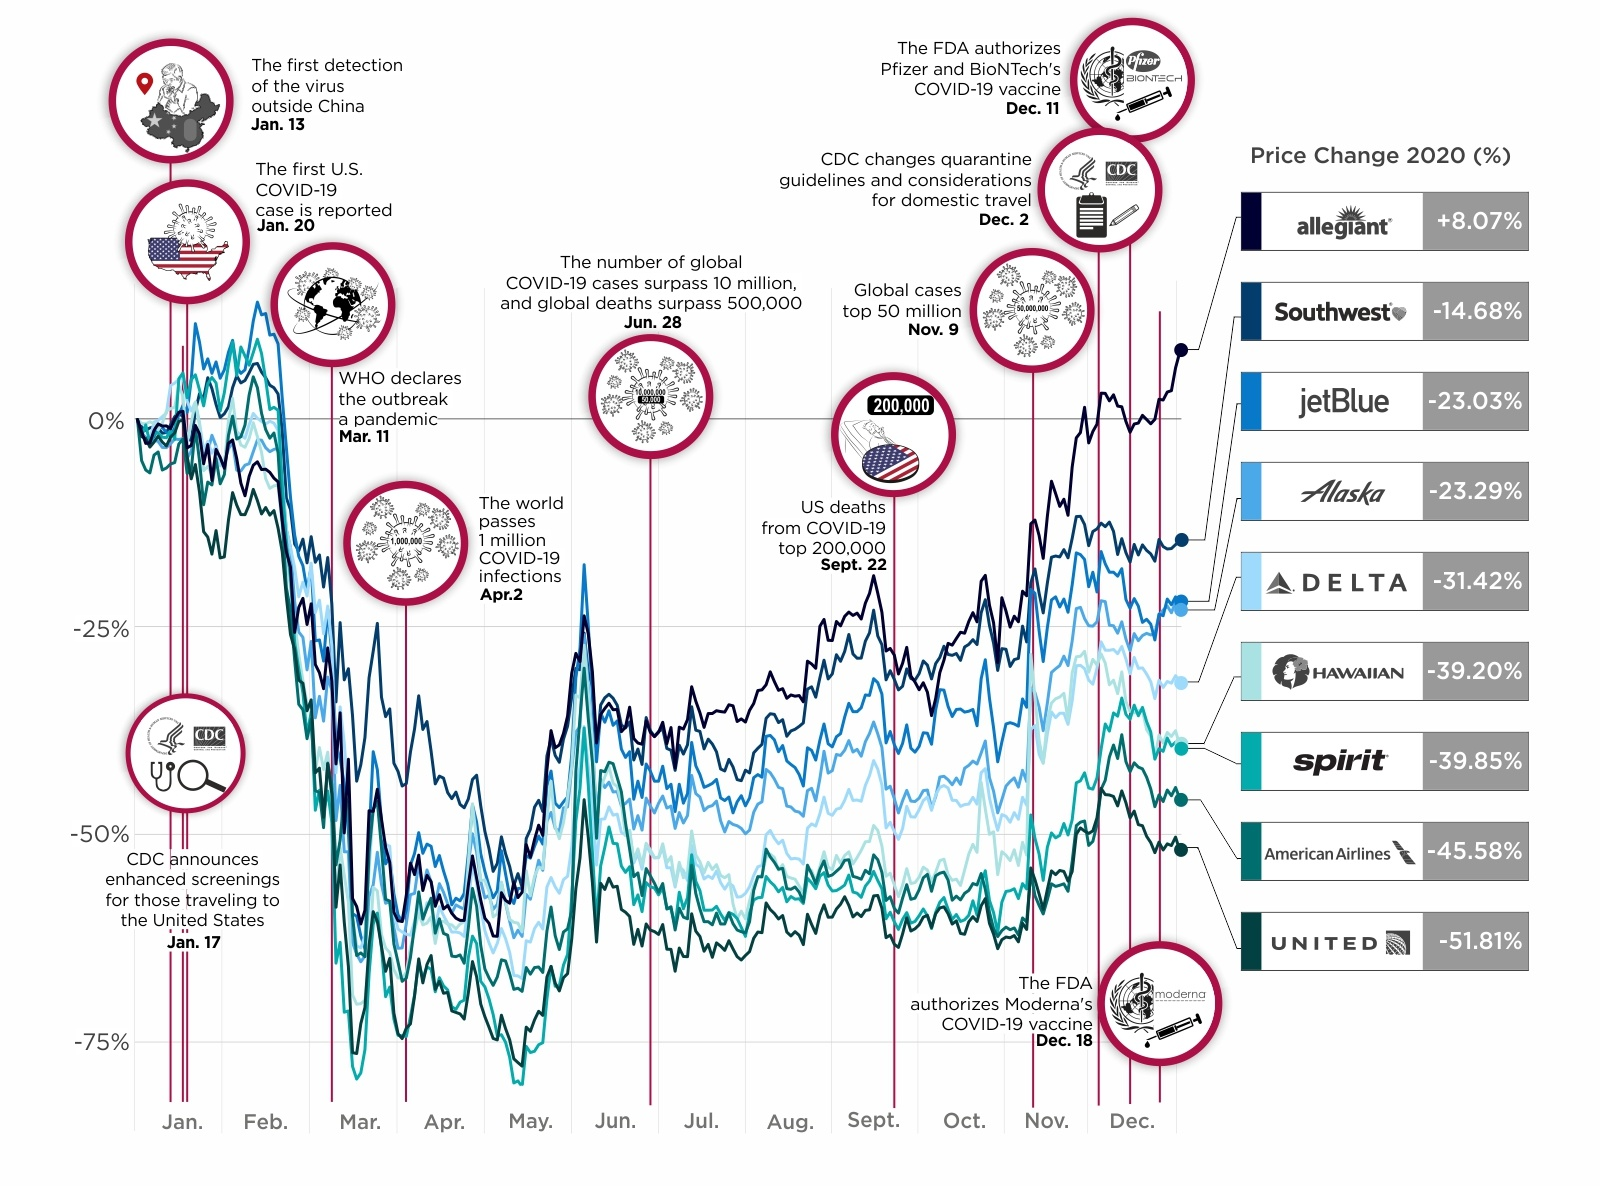 The Historic Collapse of U.S. Airline Stocks In One Visual